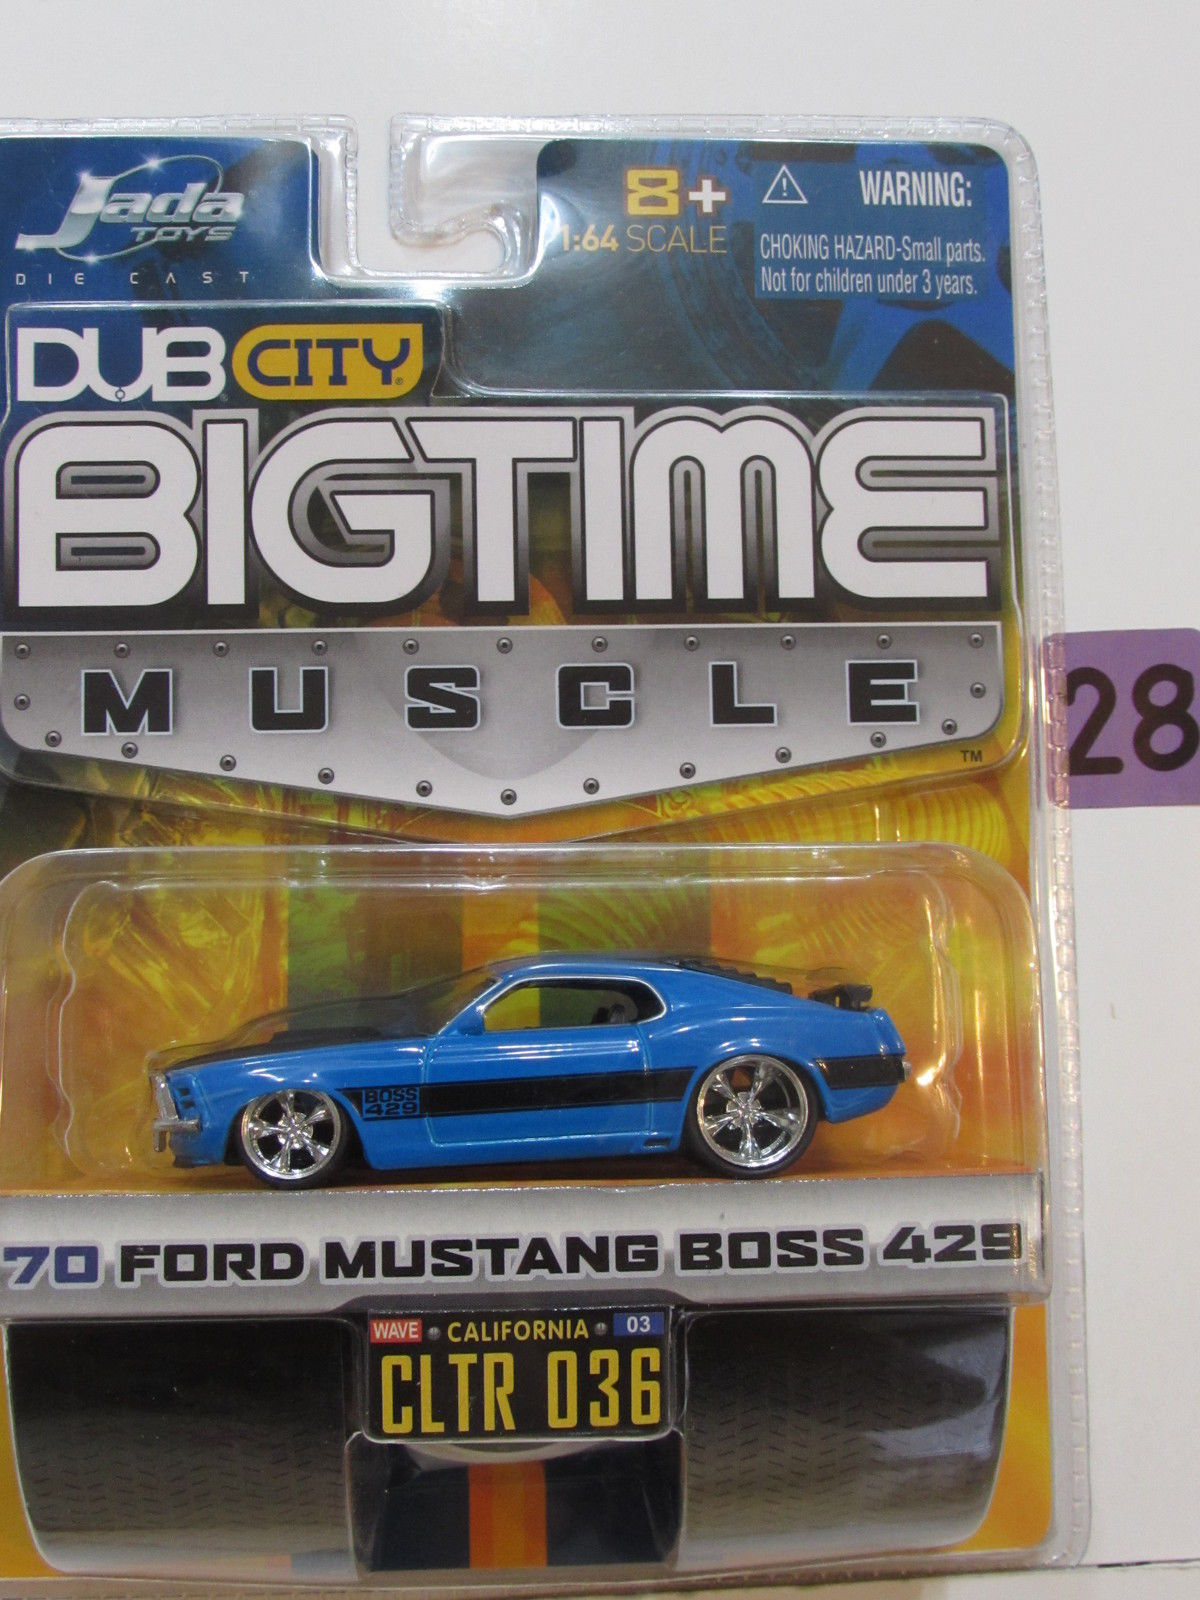 JADA DUB CITY BIGTIME MUSCLE '70 FORD MUSTANG BOSS 429 CLTR 036 BLUE